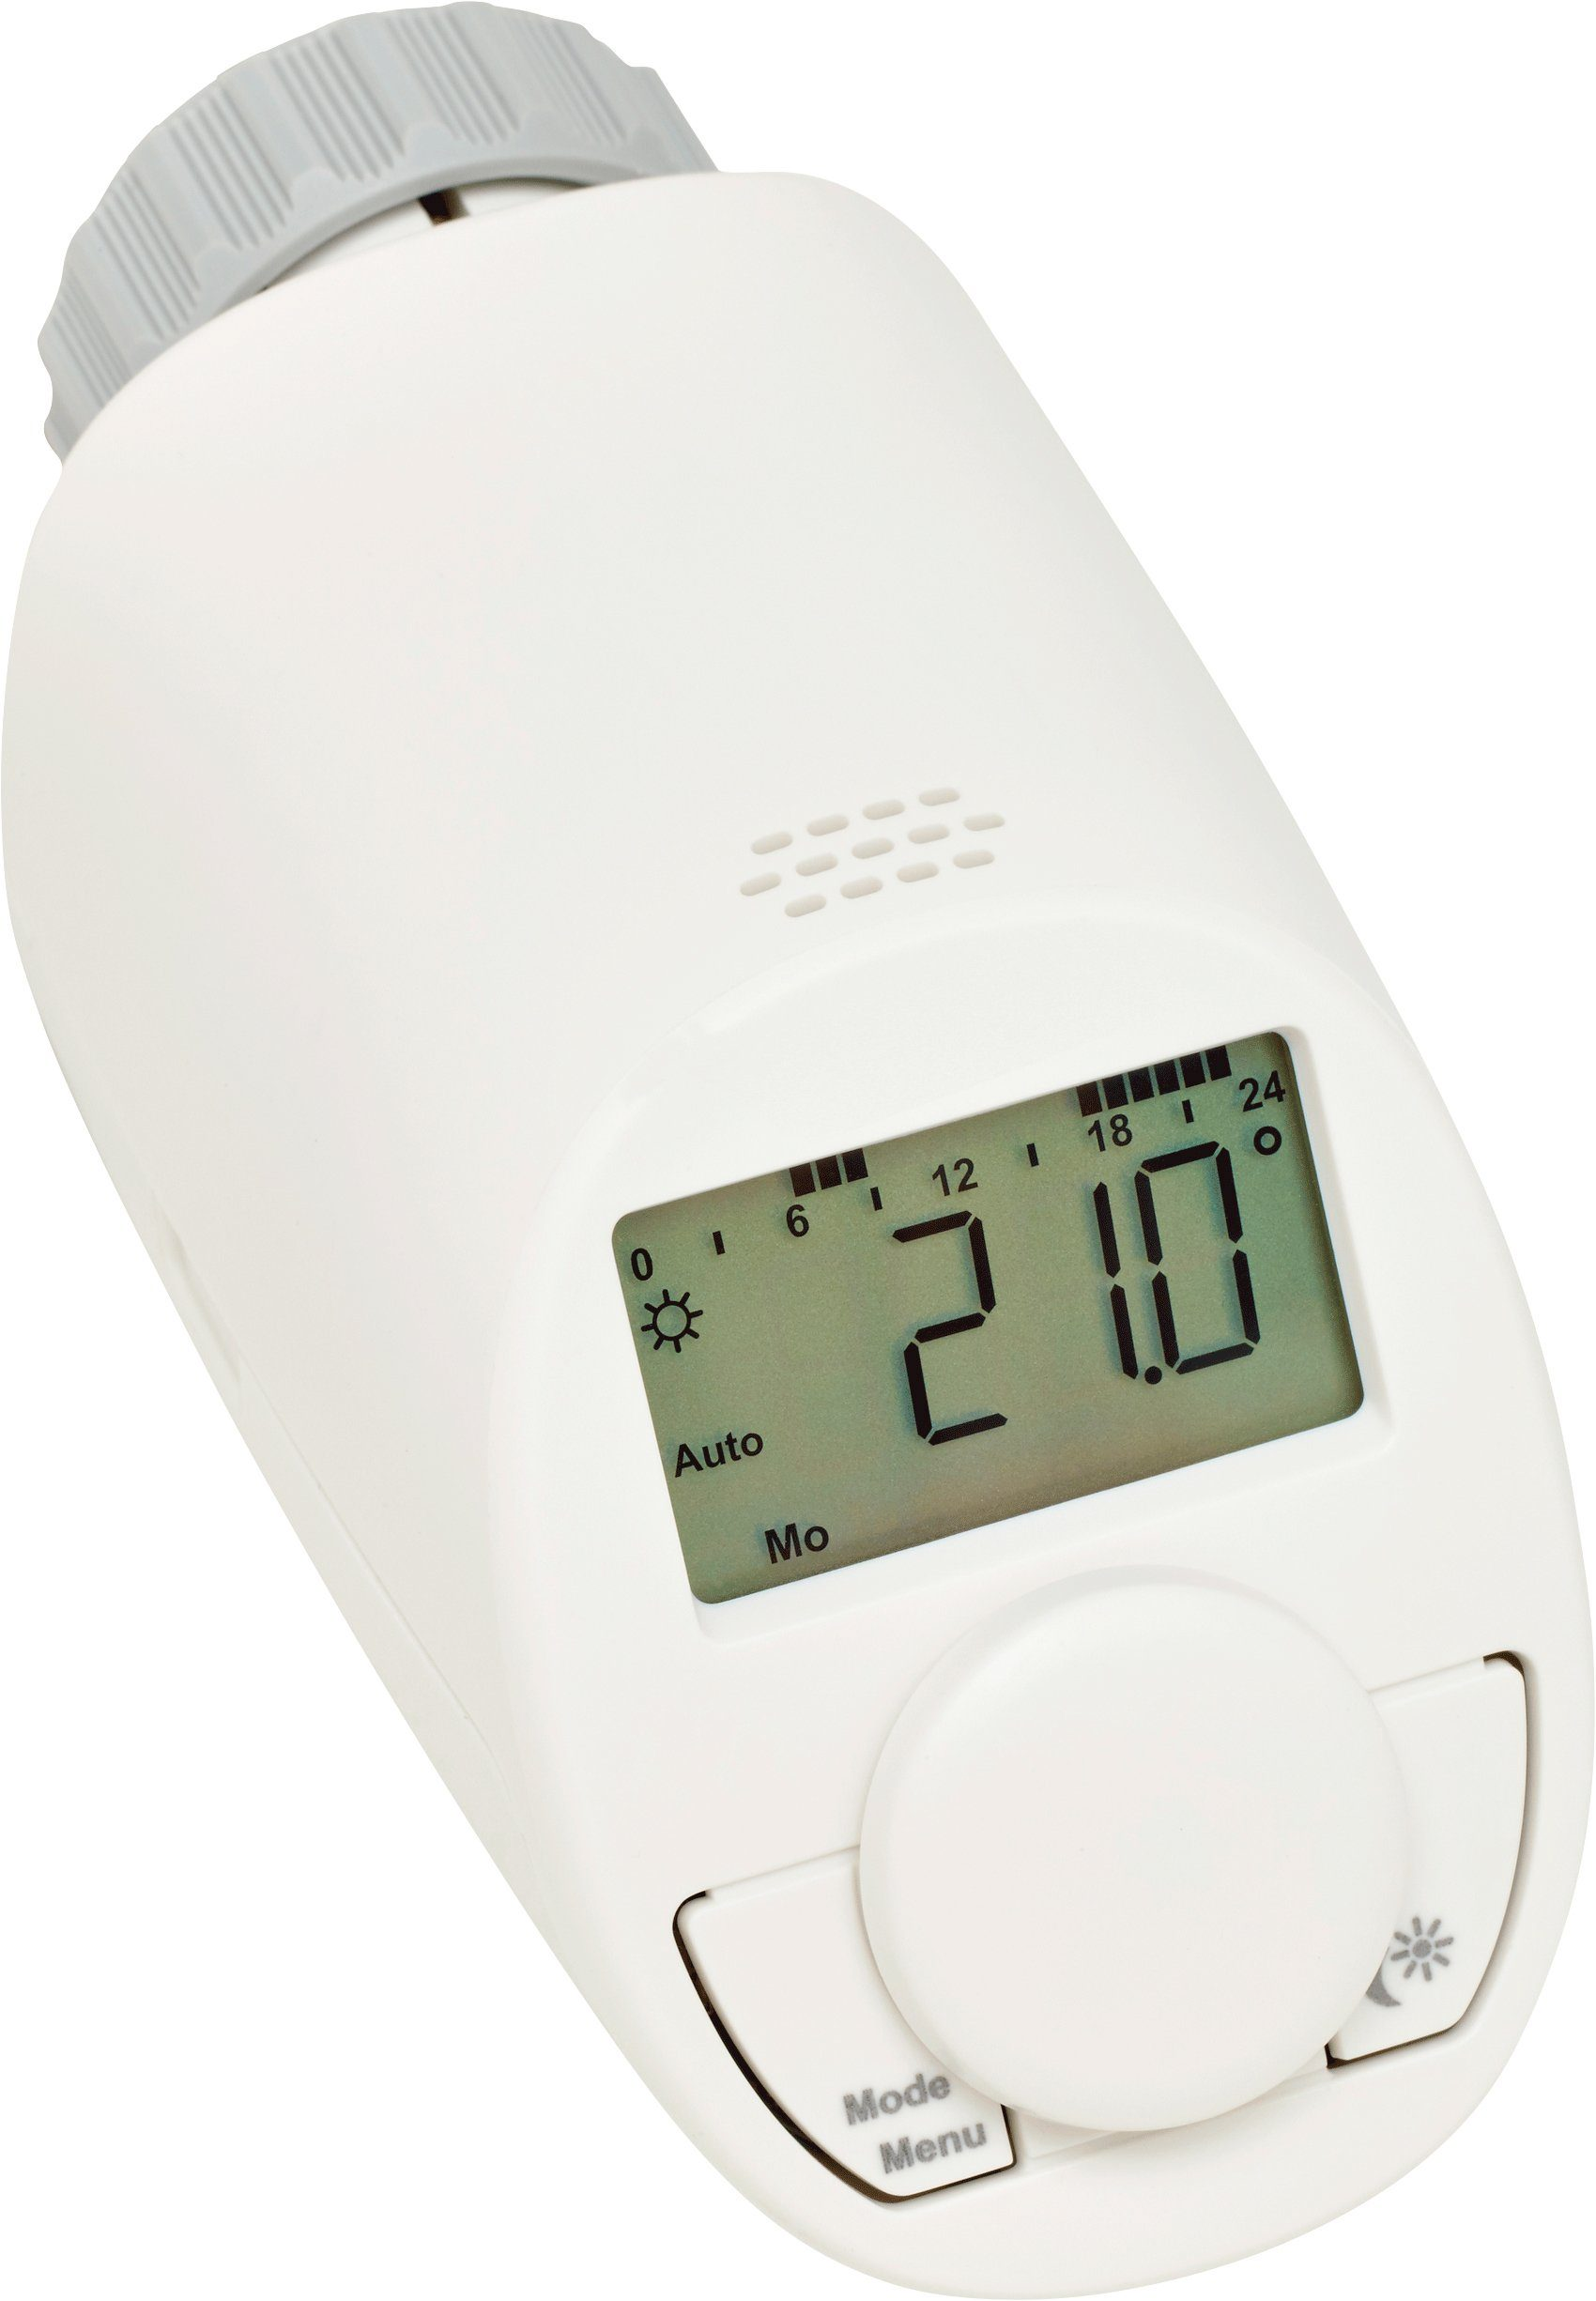 EQIVA Heizkörperthermostat »Model N«